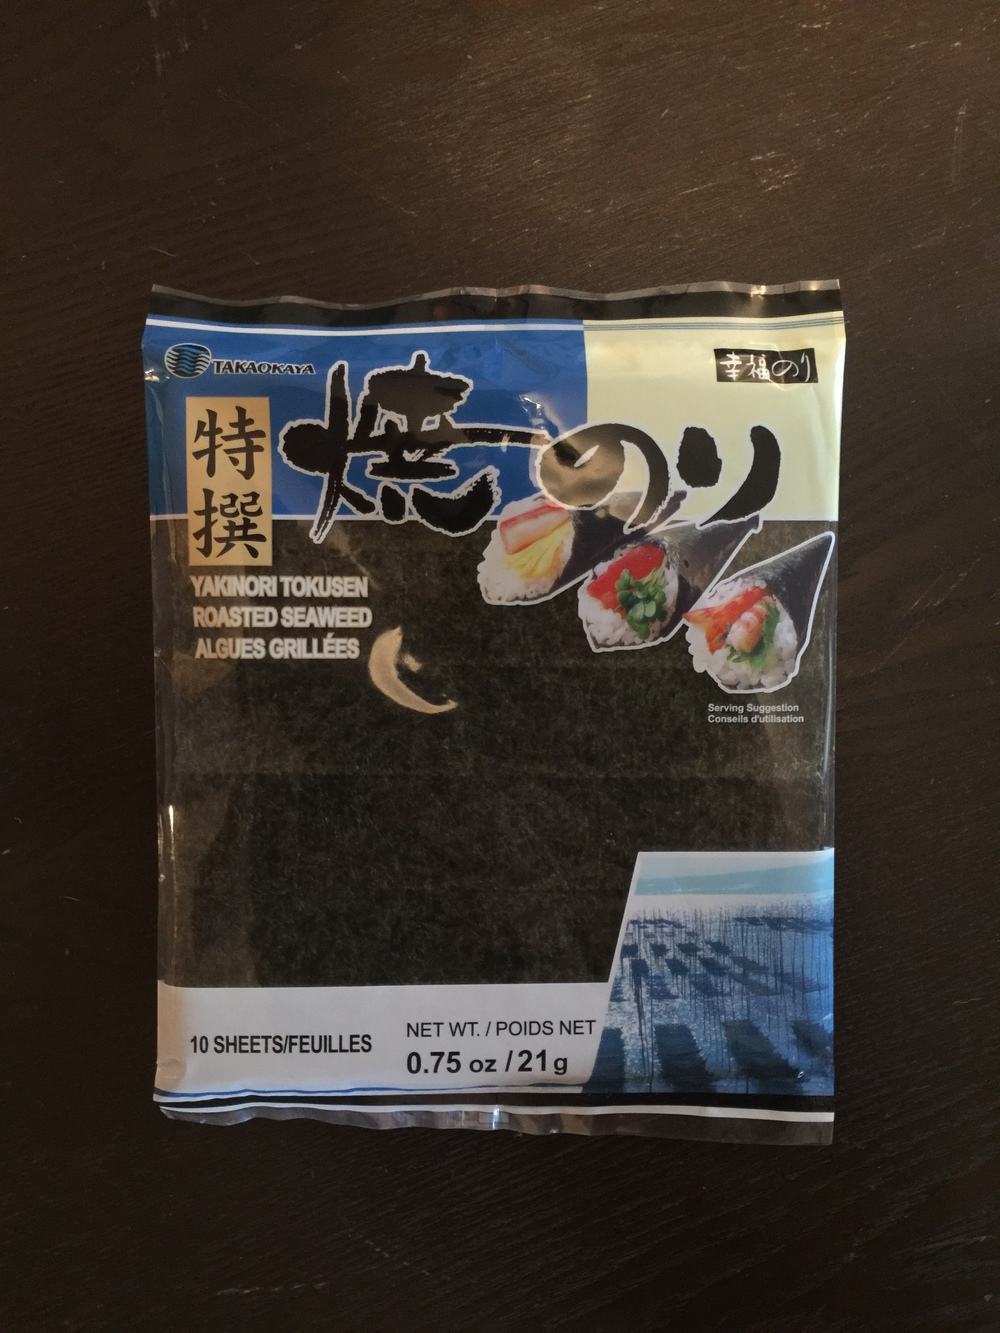 one example of a package of RAW nori sheets